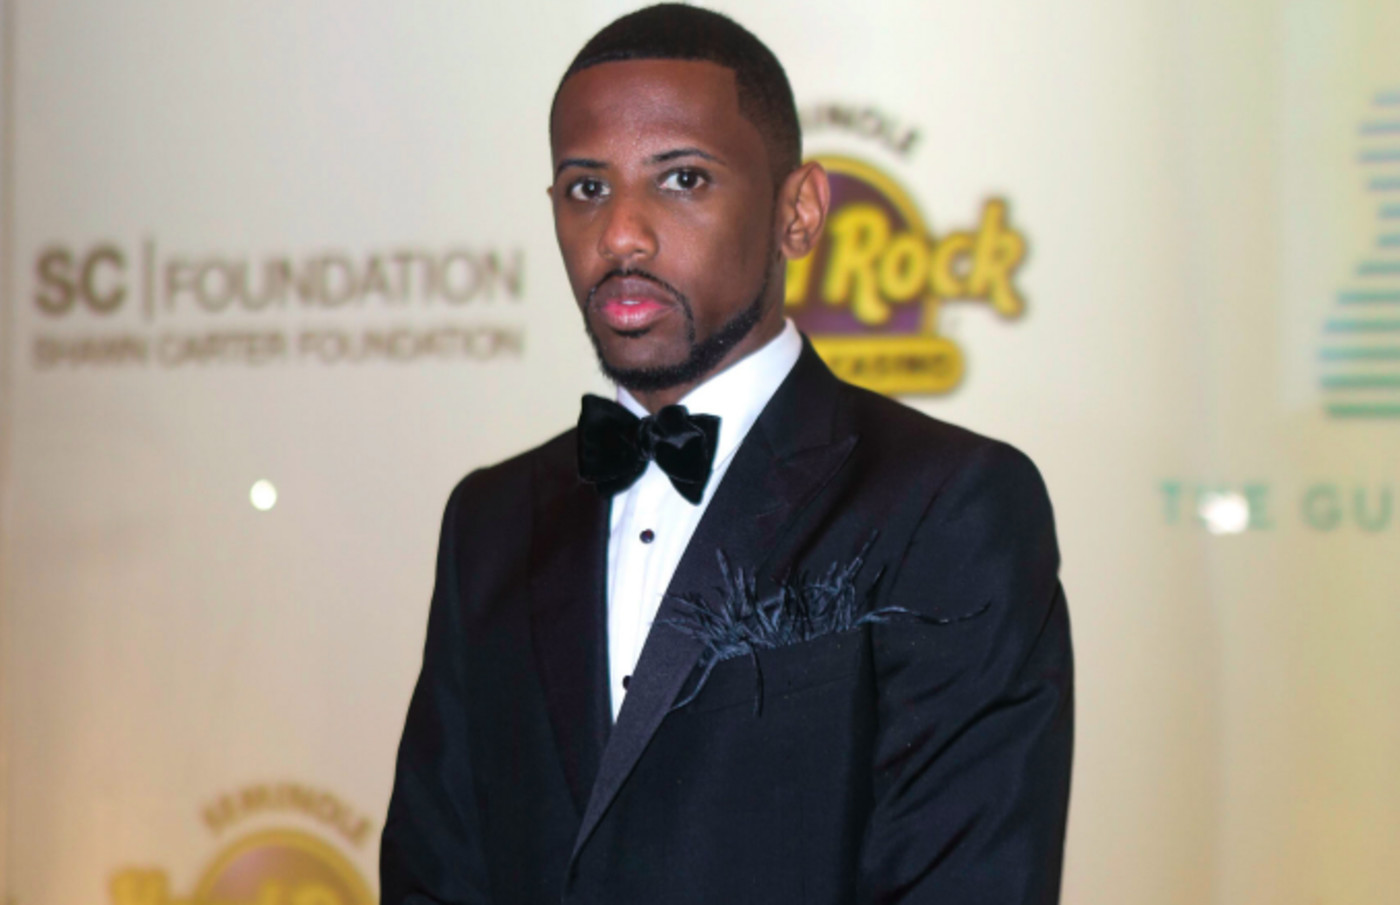 Fabolous arrives at the Shawn Carter Foundation Gala